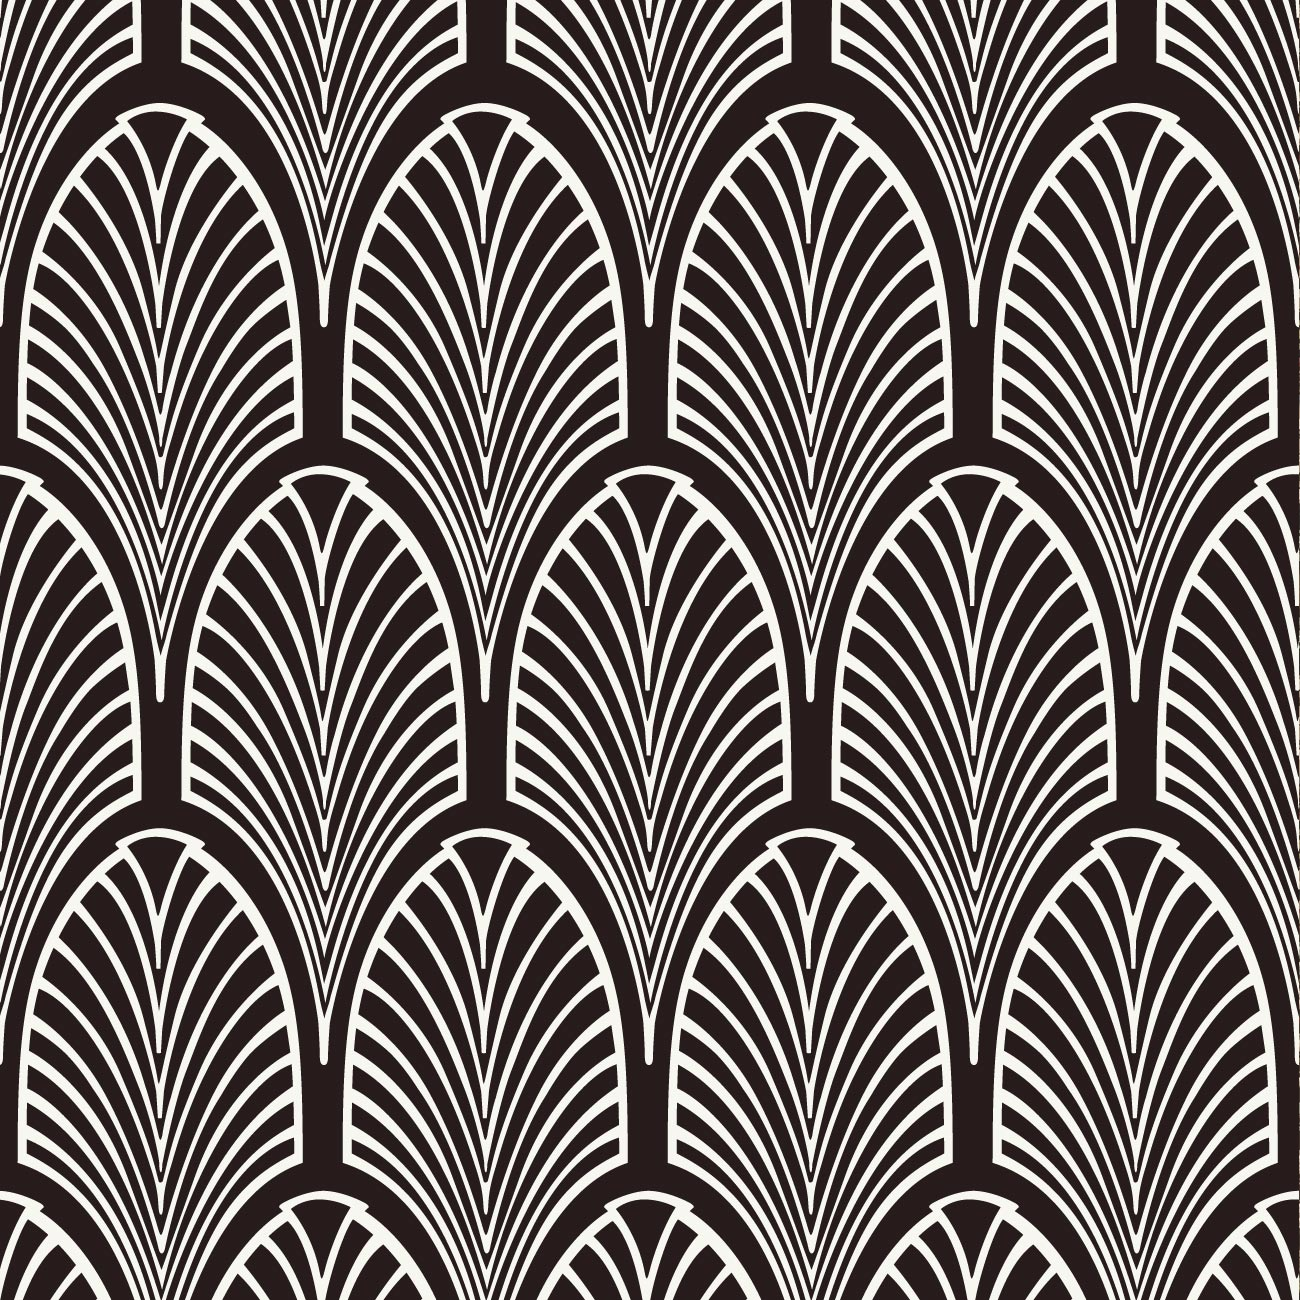 art deco wall paper deluxe fabric art deco wallpaper 377137 home design ideas pattern with. Black Bedroom Furniture Sets. Home Design Ideas